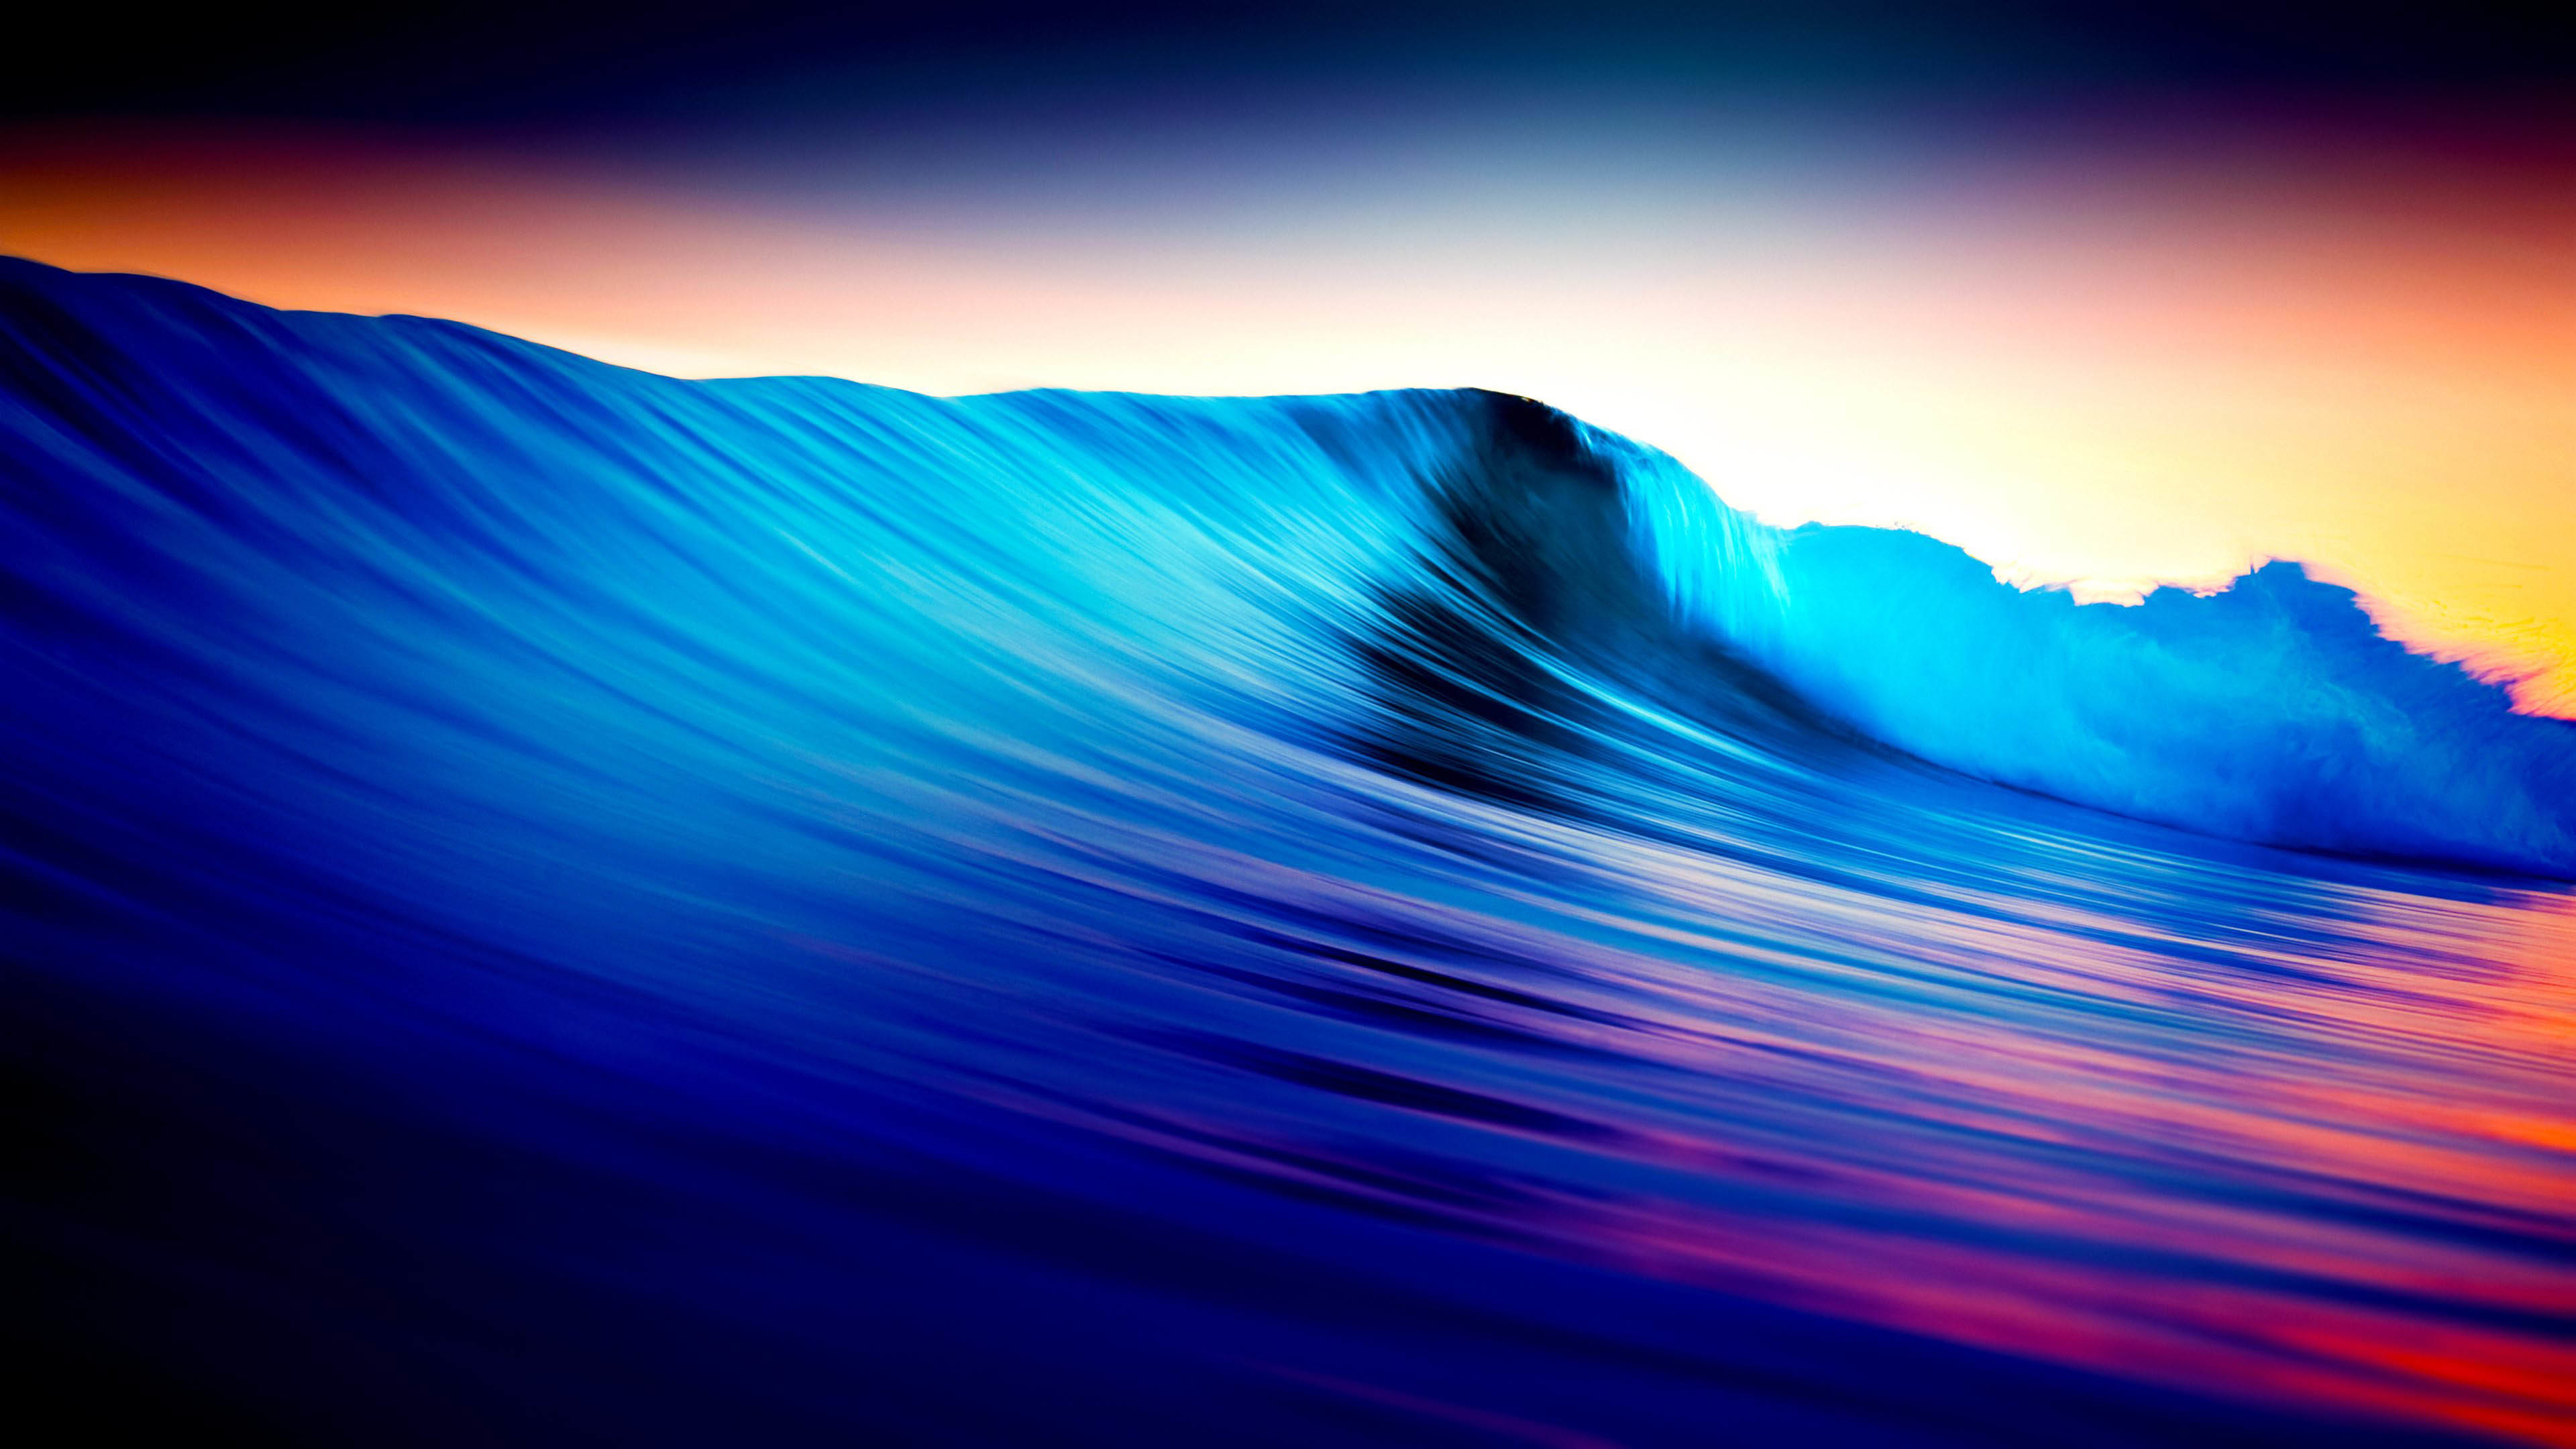 Amazing Colored Waves wallpaper